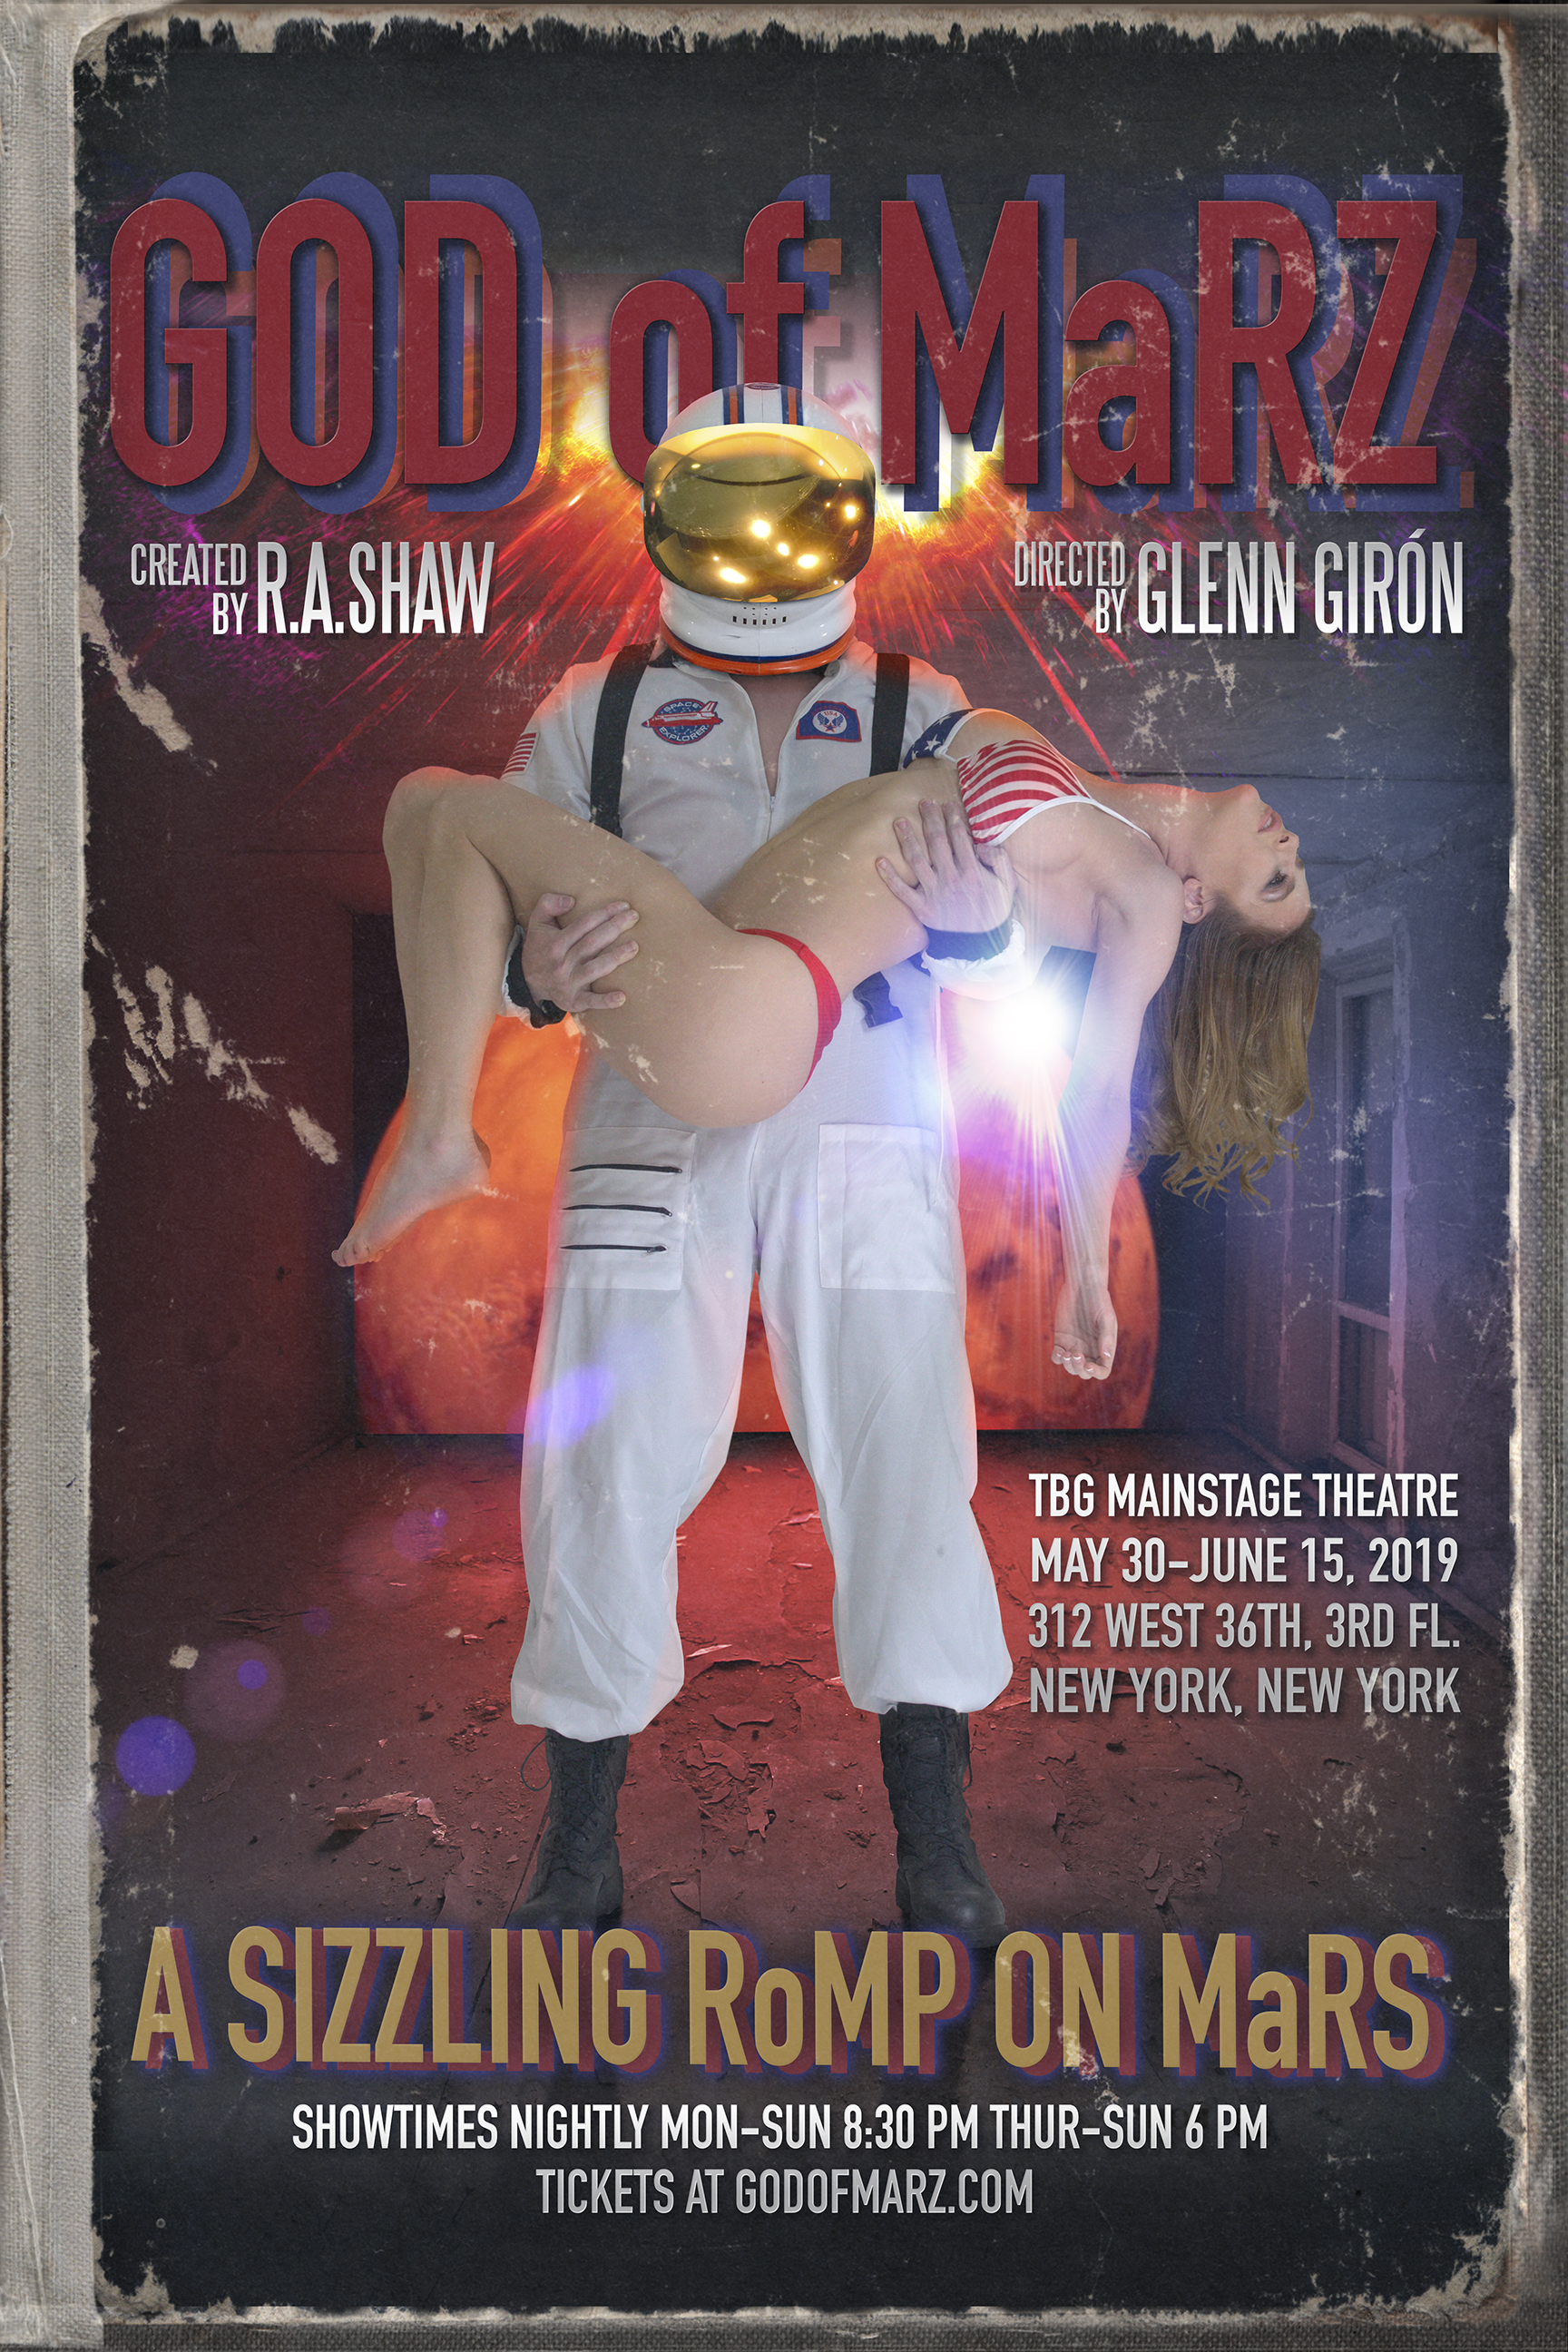 Bryan Ward's poster design for the show. Top: Rachel Sheen as the Woman in the Moon.